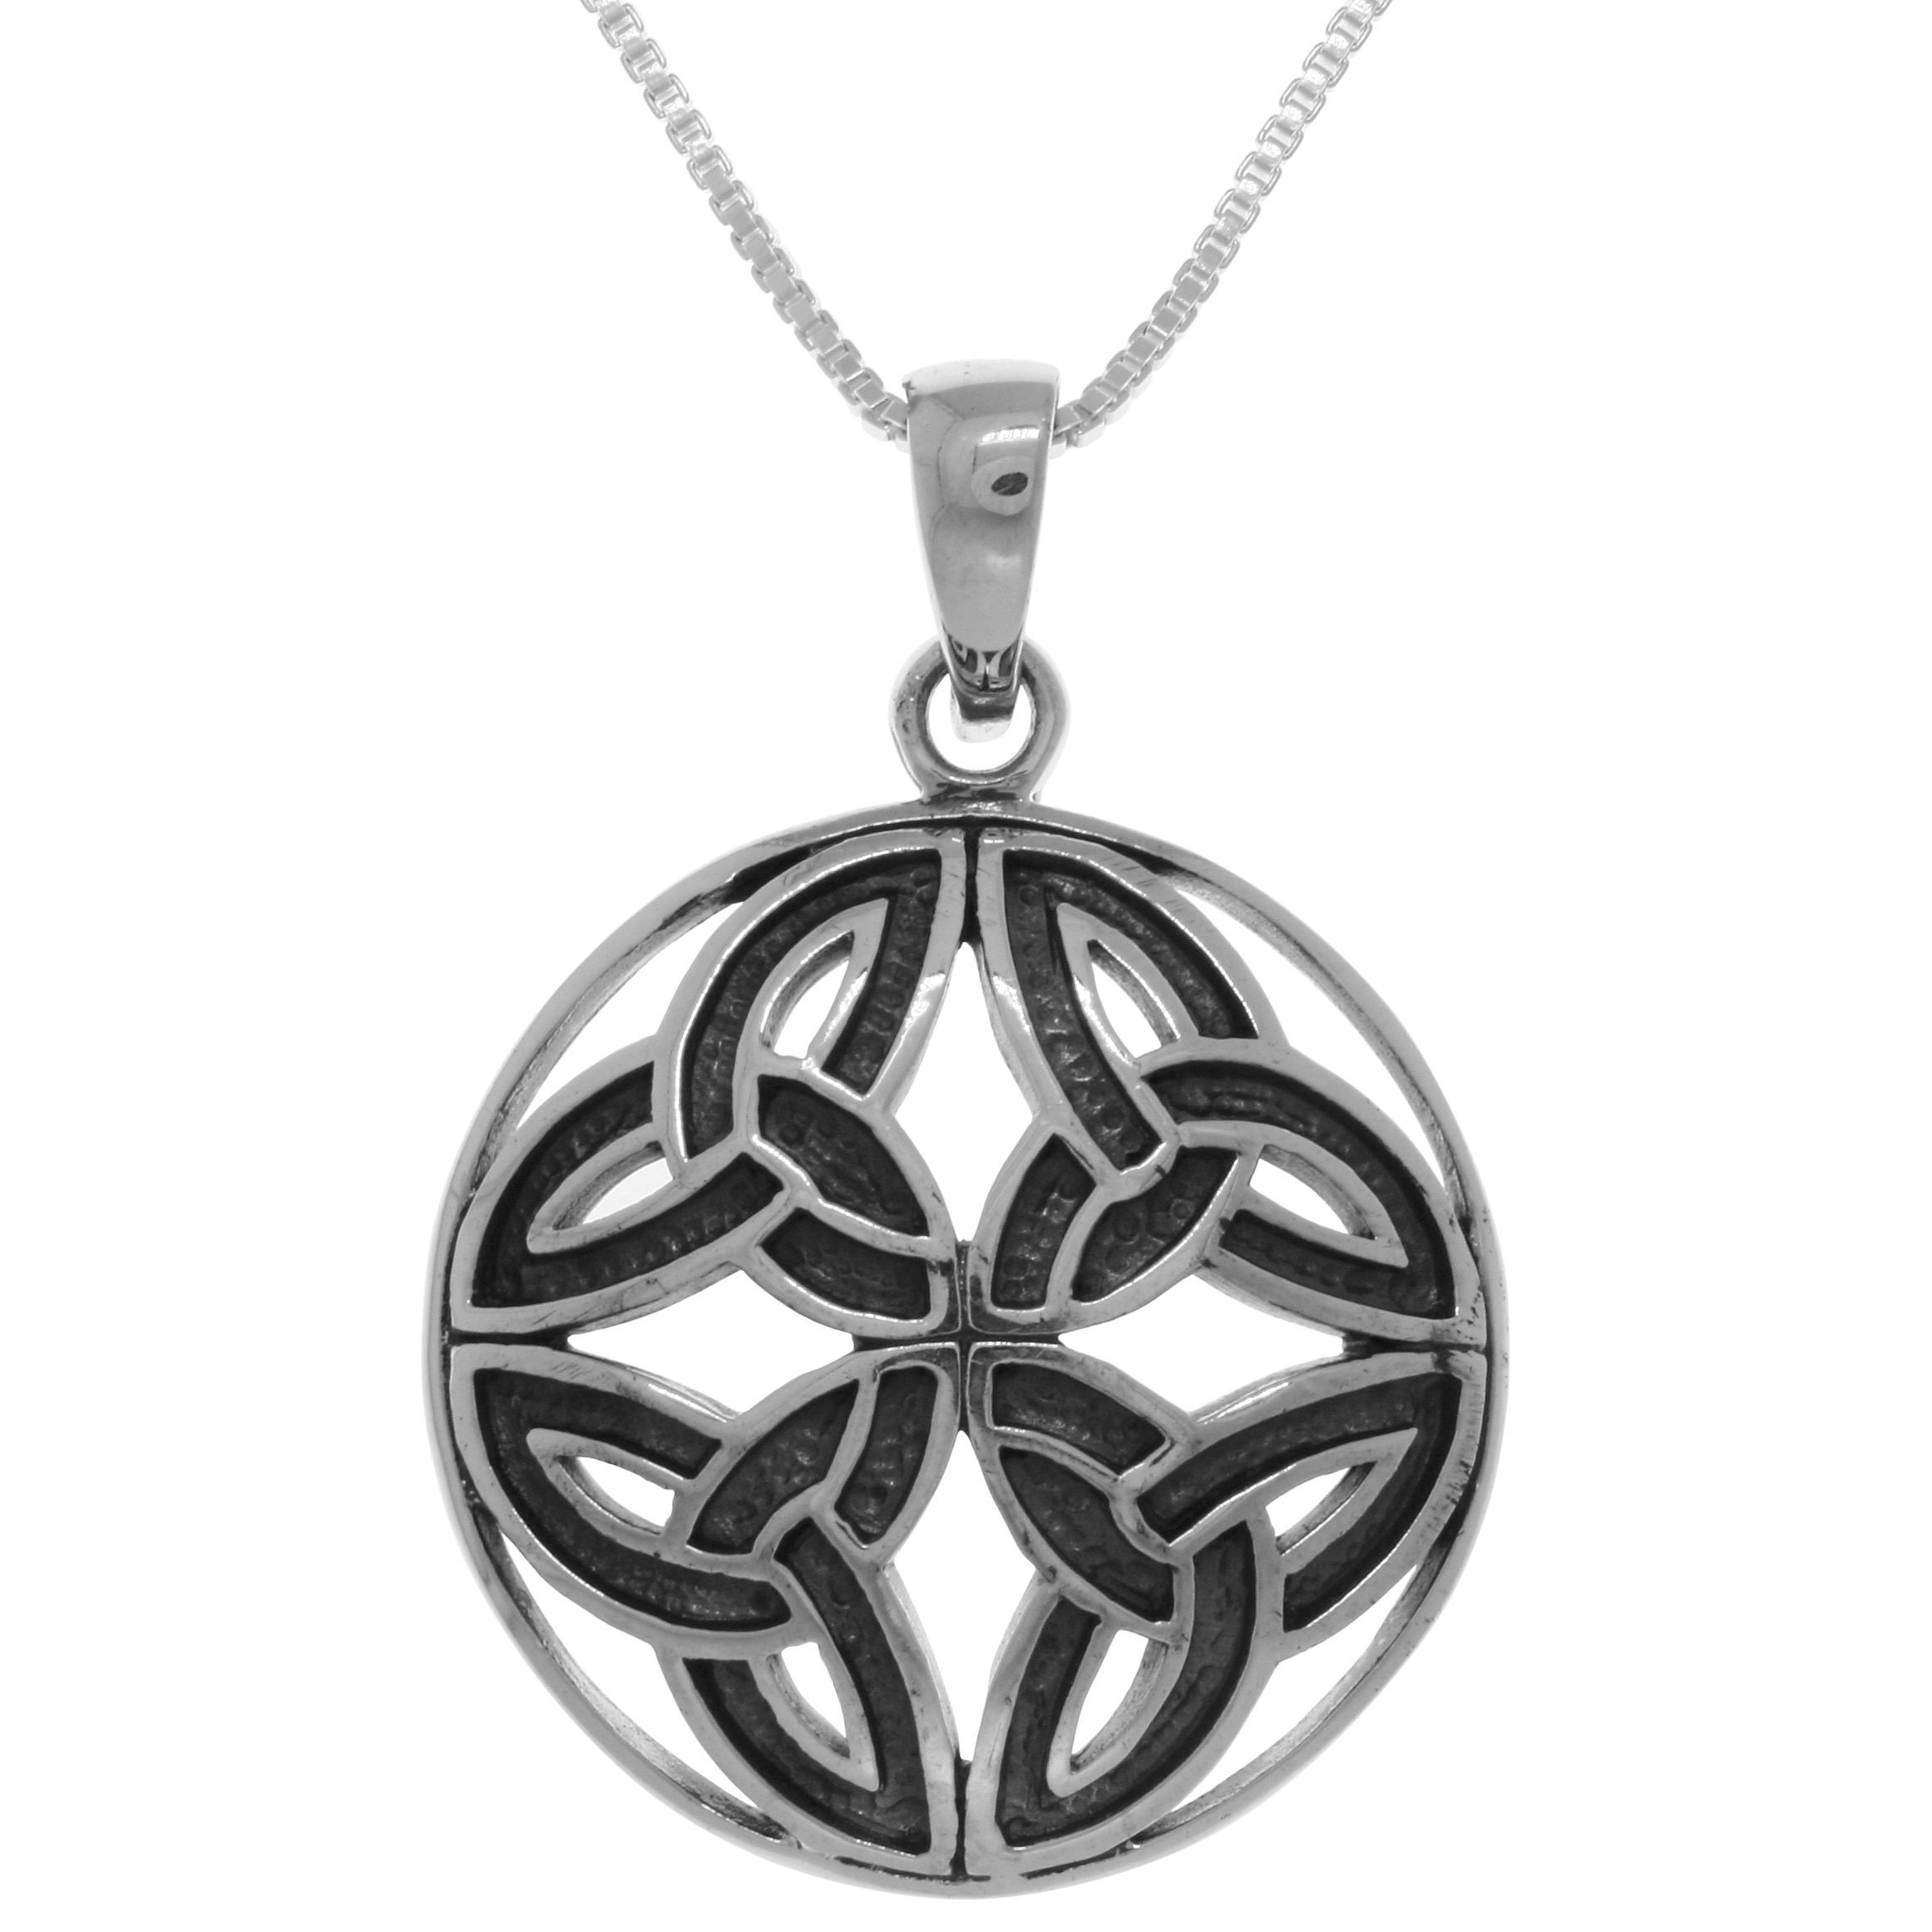 silver black celtic charm sun cotton pendant necklace trilogy pewter itm jnt jewelry